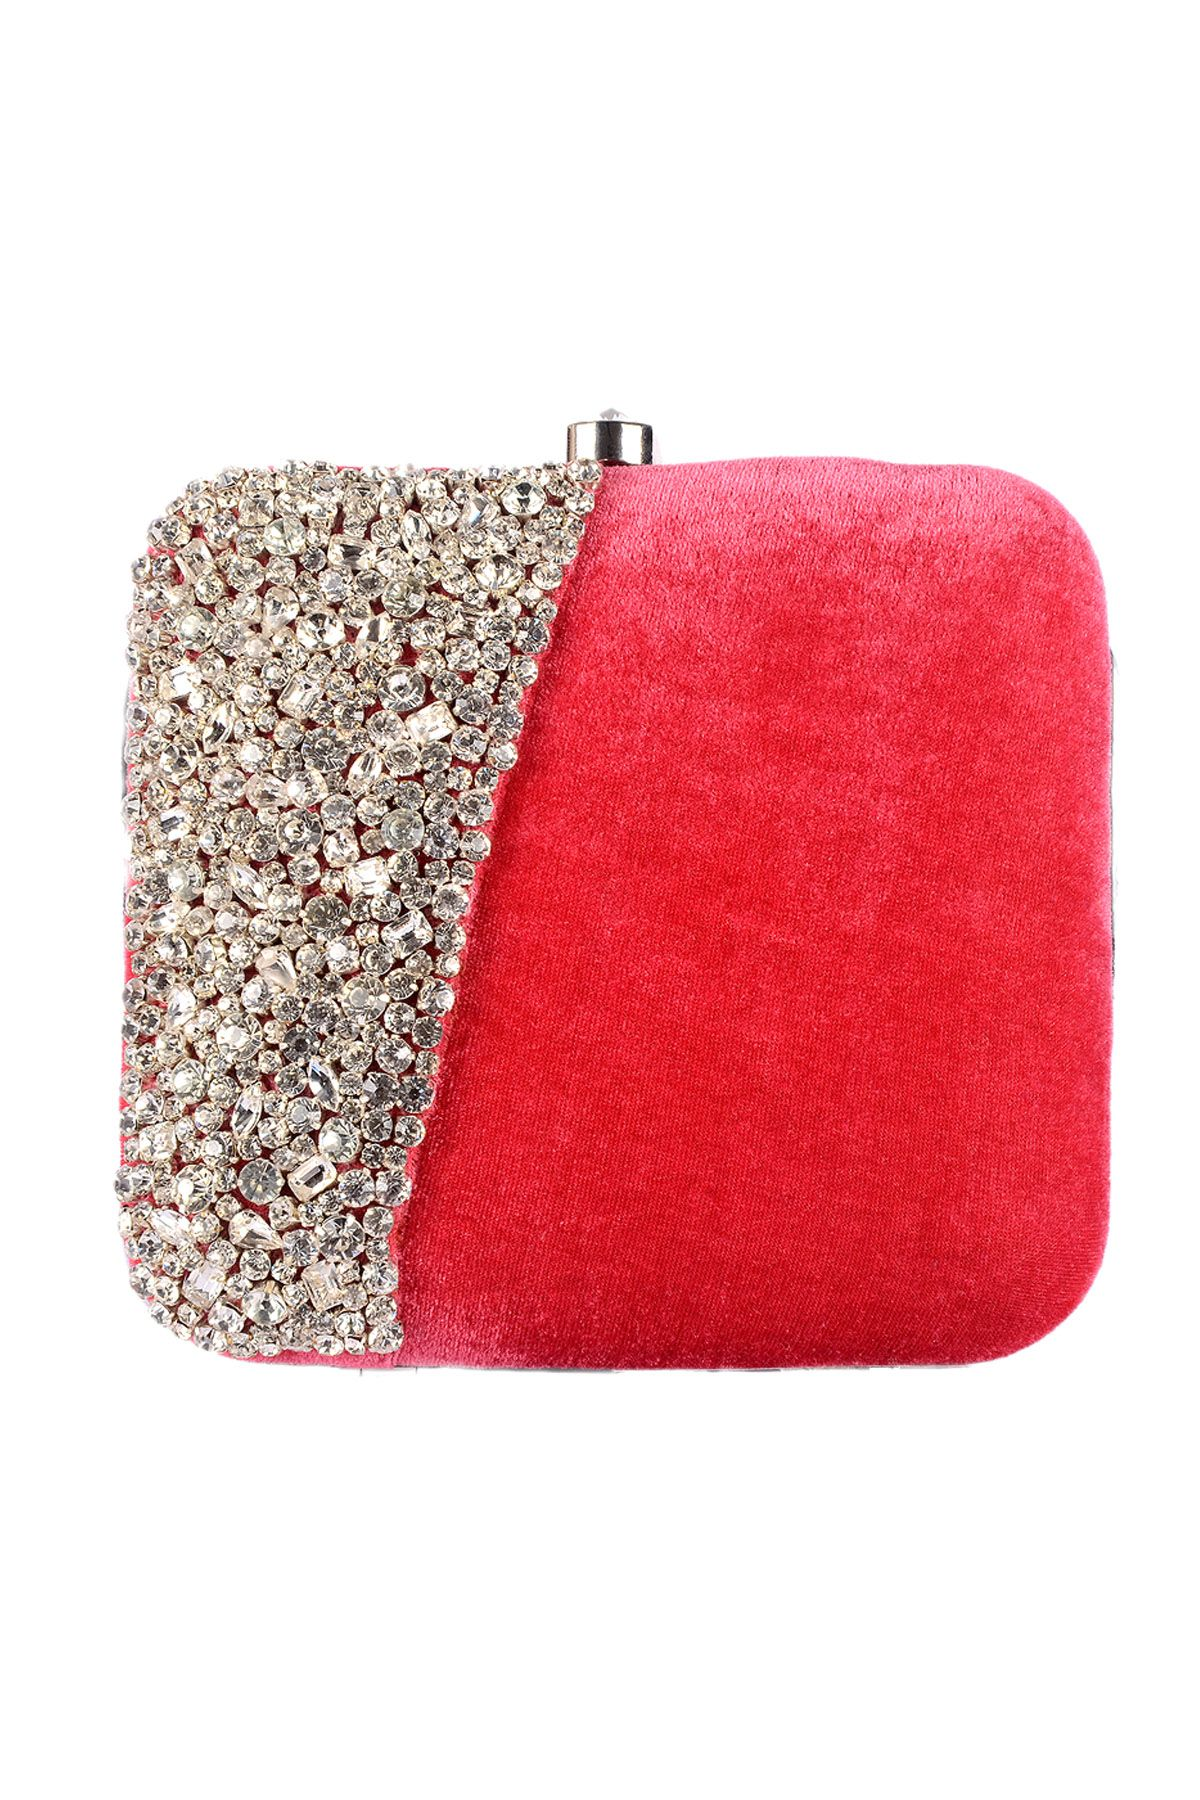 Shine bright with this sturdy box clutch crafted out of plush velvet fabric and sprinkled with beautiful rhinestone studs. Dipped in hues of vibrant pink, this bag adds the perfect amount of bling to your chic fashion statement. Pair this with a strapless knee length dress and high heels.